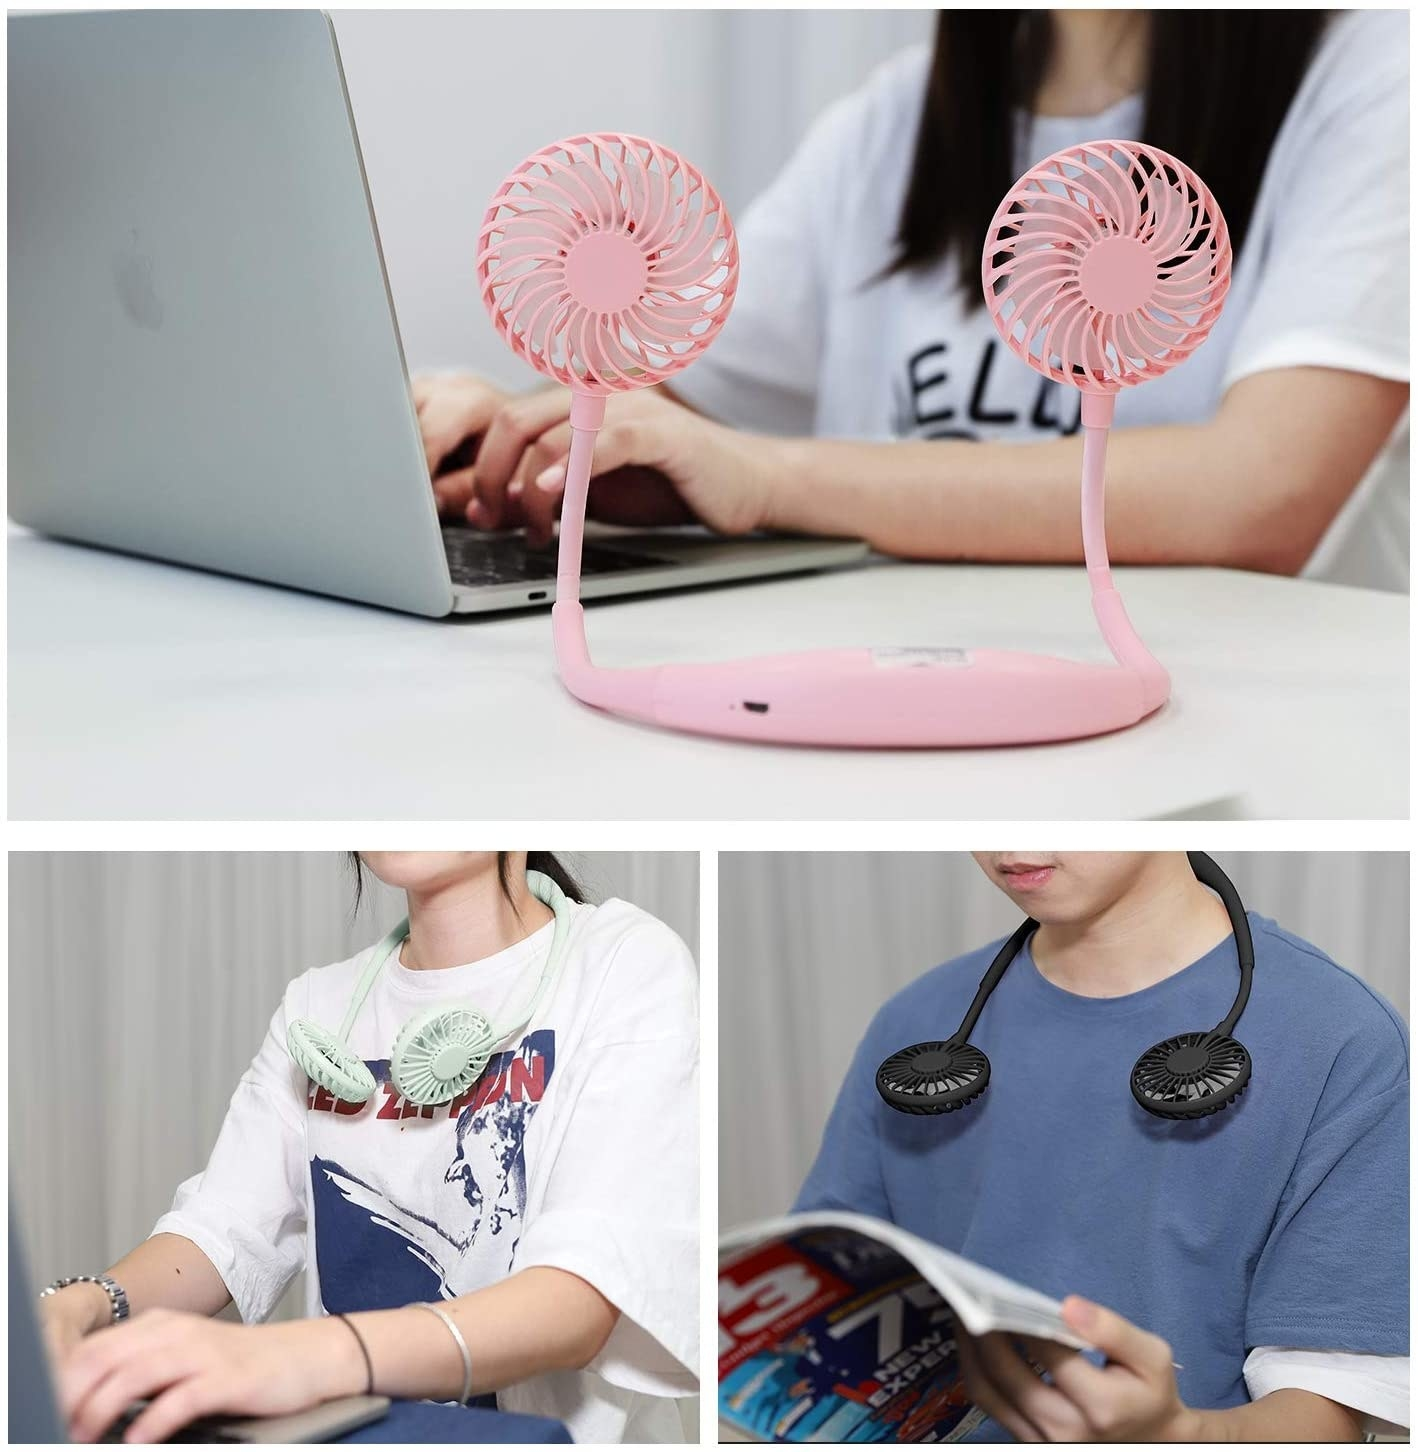 Two people wearing the portable fans around their necks and one person with it resting on their desk